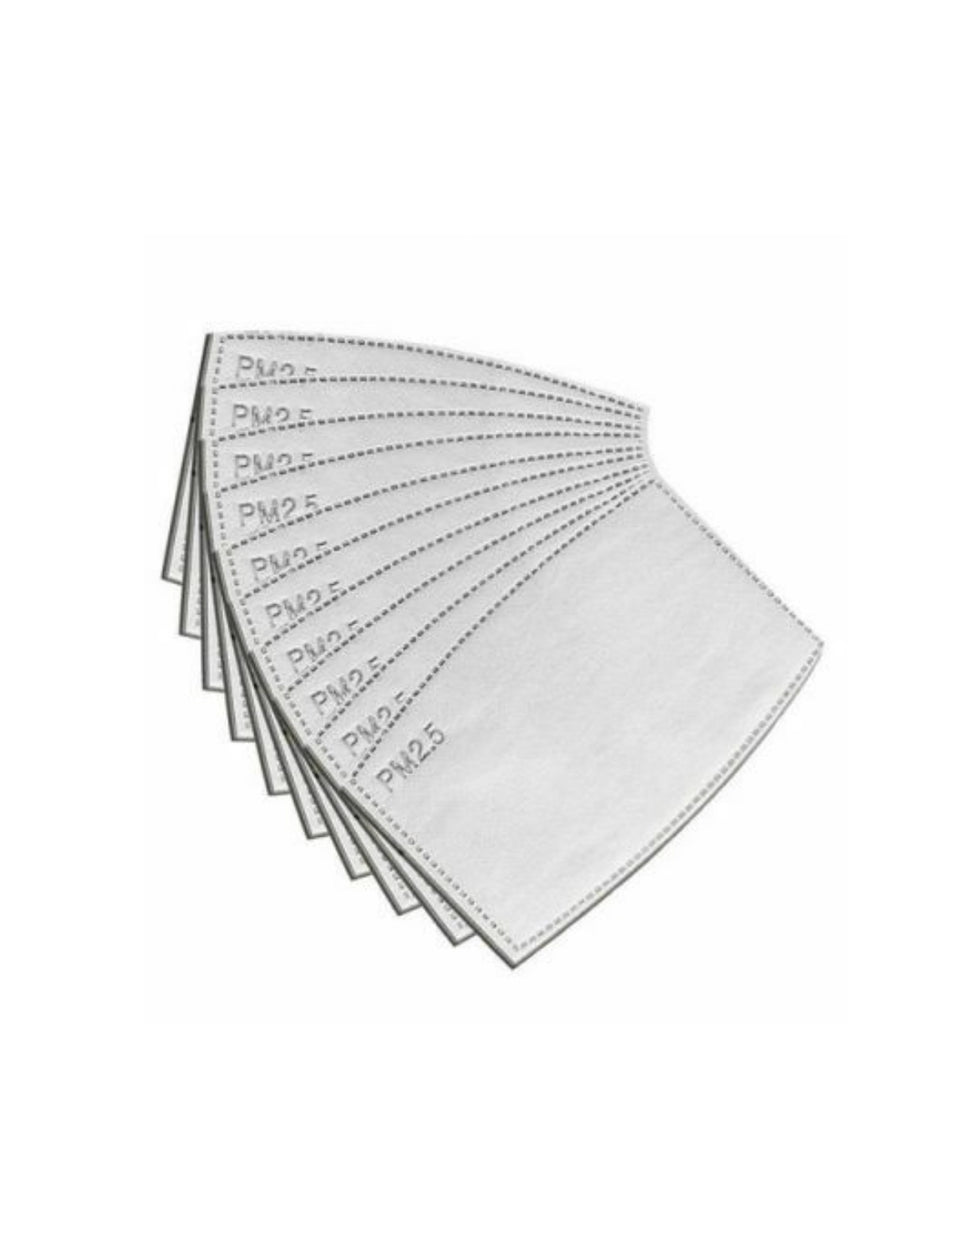 PM 2.5 Filters (20 Pack)